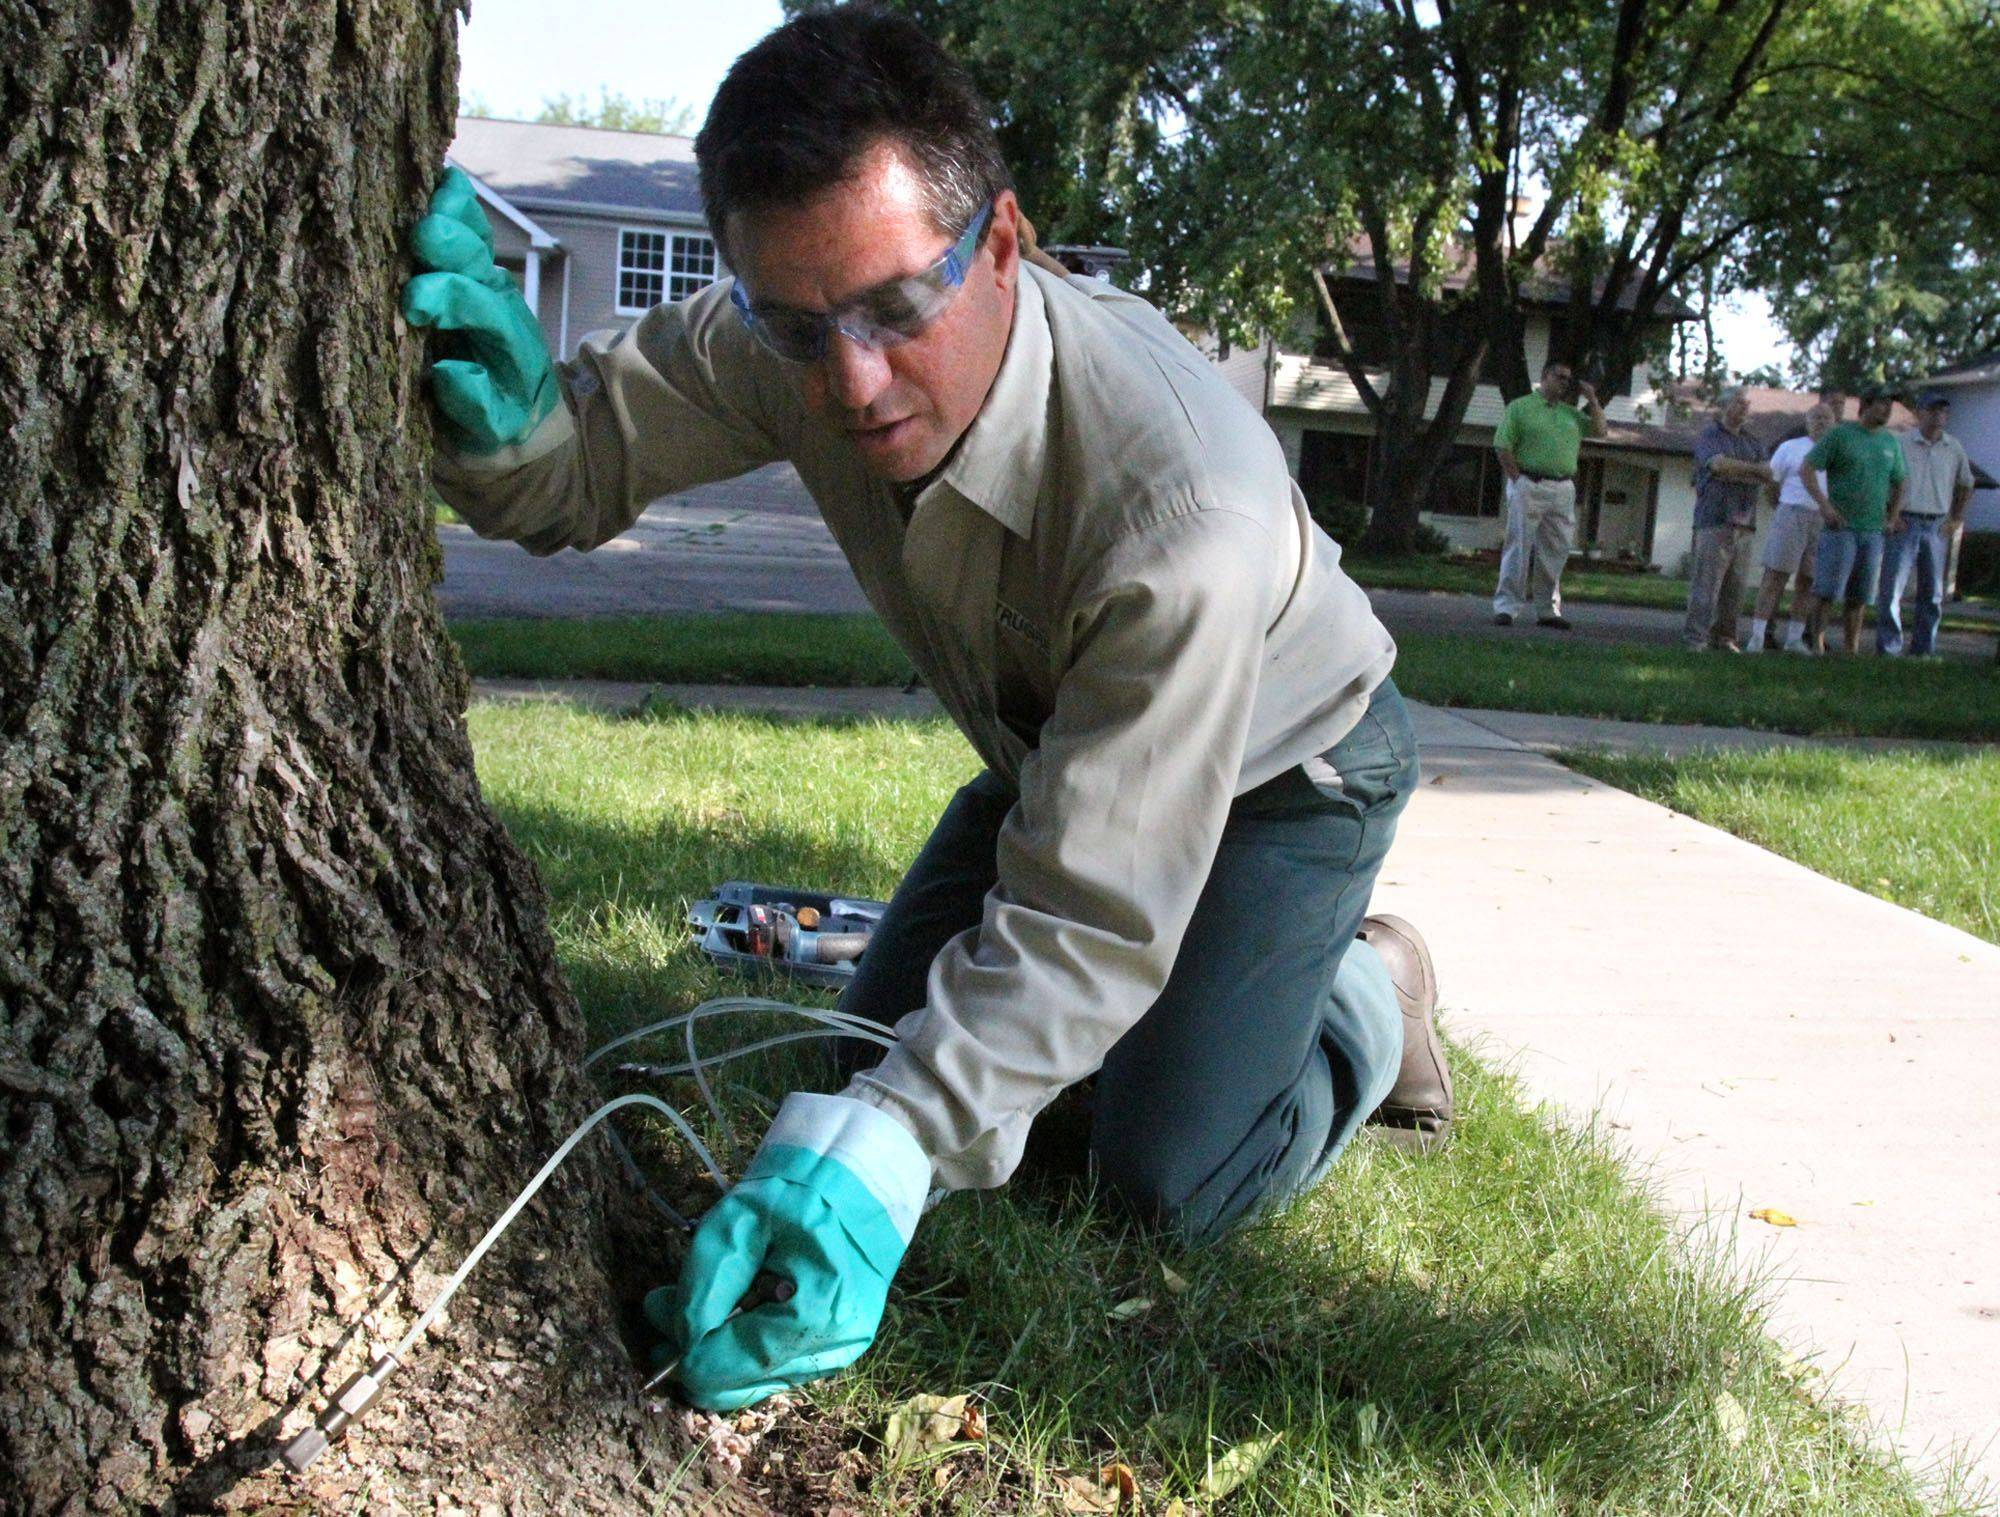 As concerned residents look on, Ron Levinson, a master certified arborist with TruGreen in West Chicago, injects an ash tree trunk with treatment for emerald ash borer at Redwood Lane and West Country Road in Bartlett.